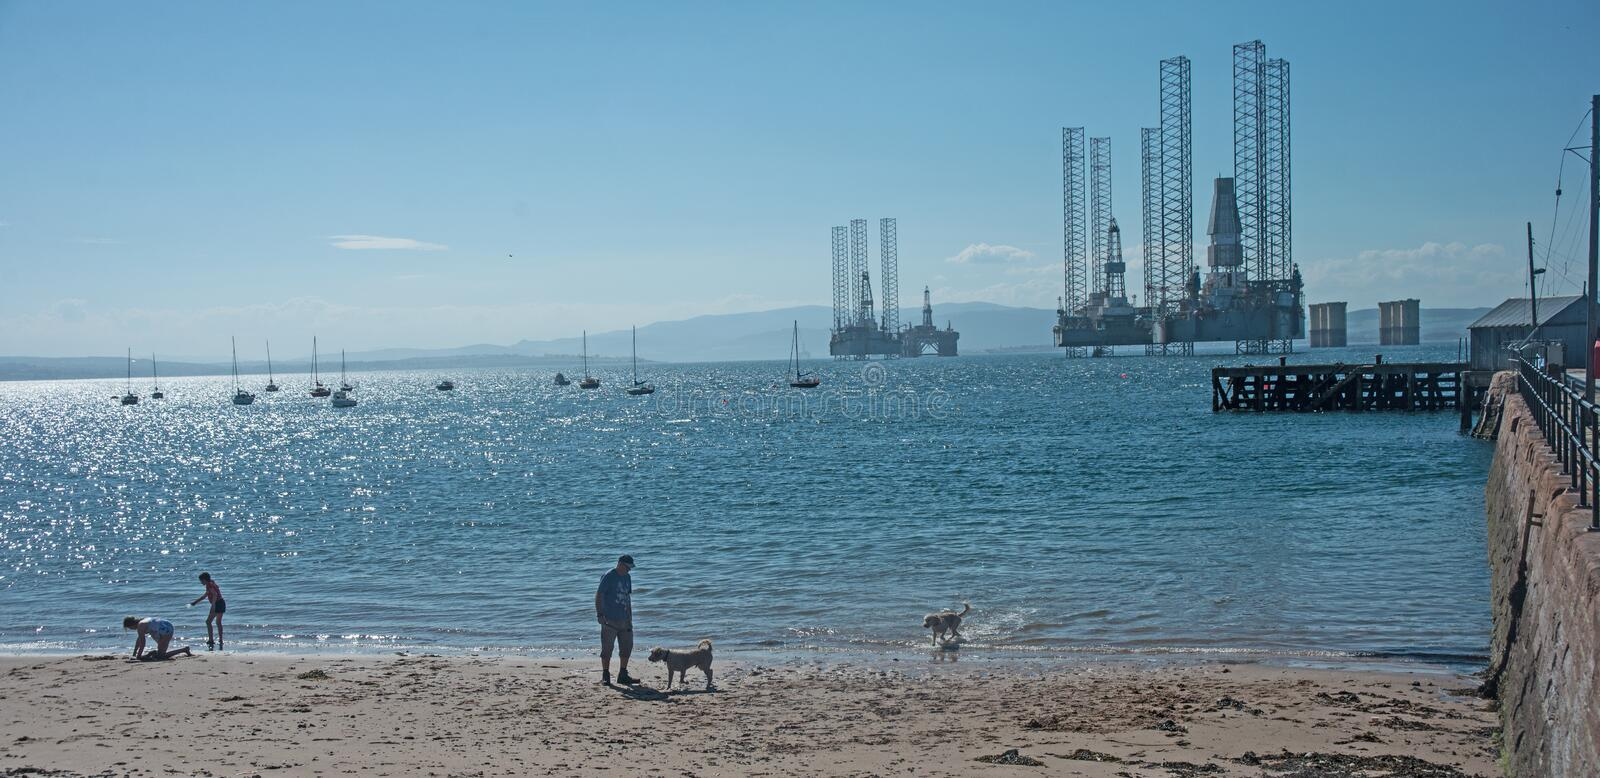 Download Cromarty Showing Yachts And Oil Rigs Stock Photo - Image of cromarty, ferry: 120259362